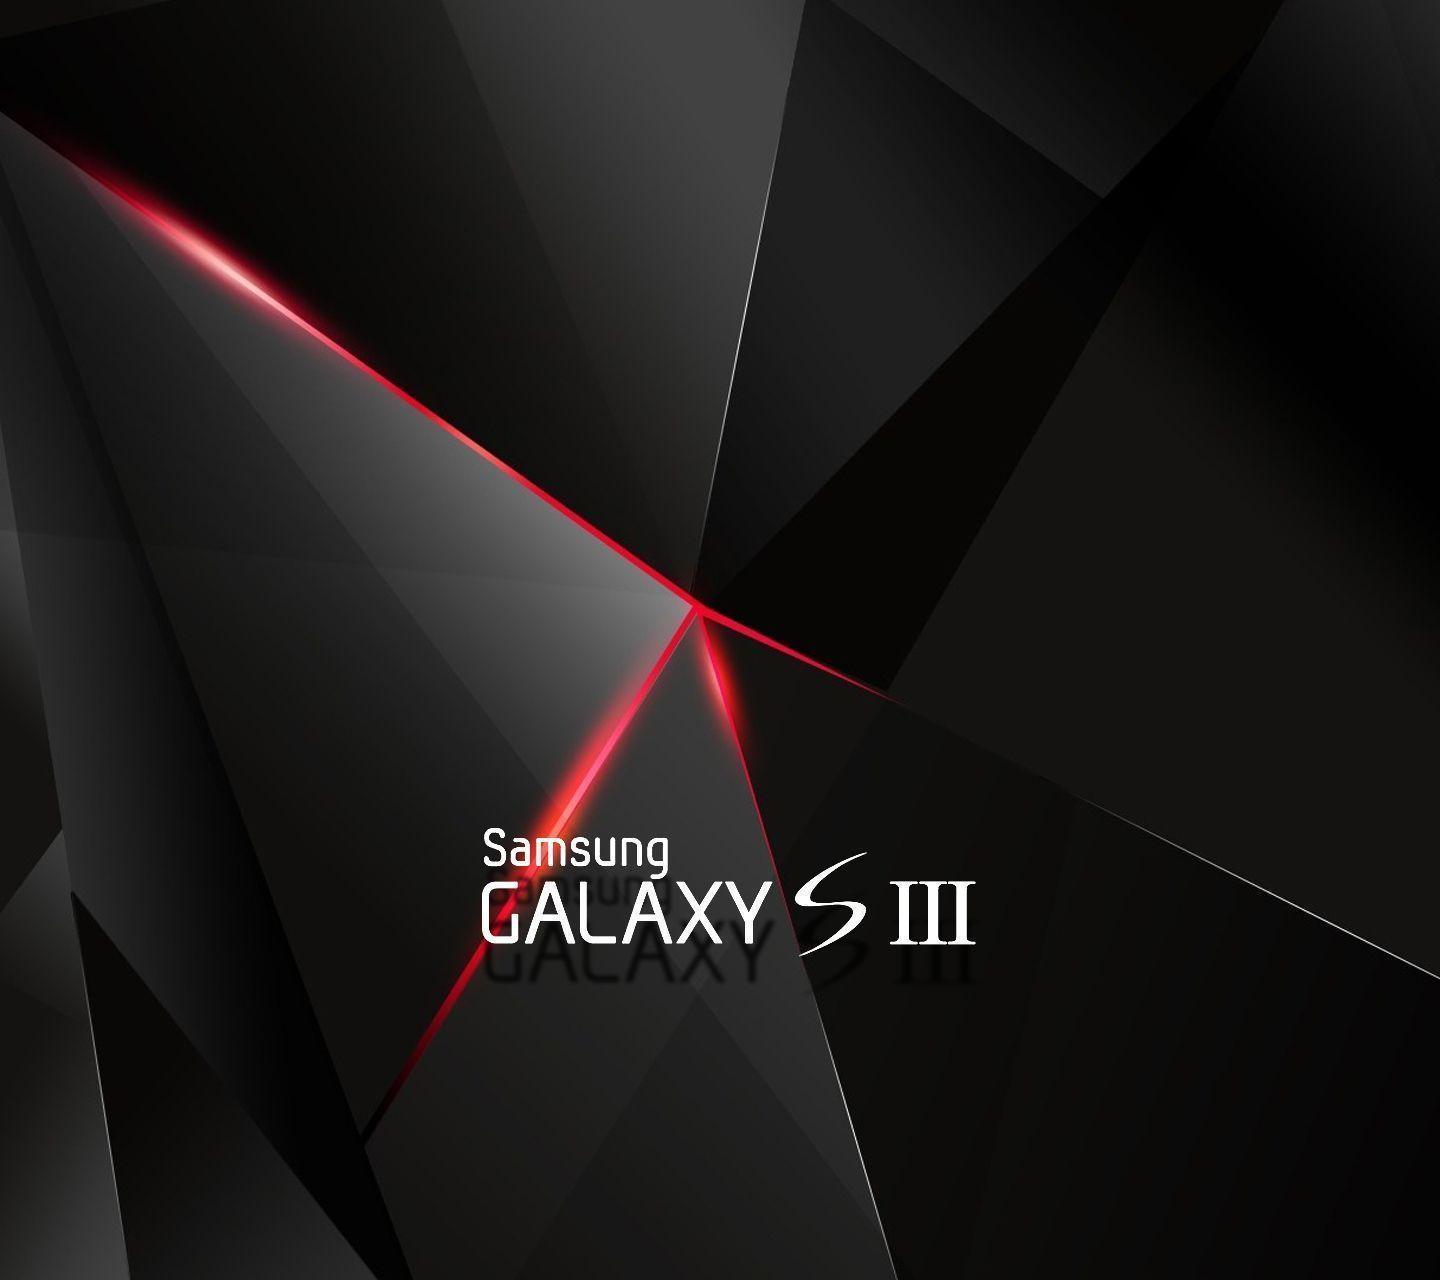 samsung galaxy s3 wallpapers space - wallpaper cave